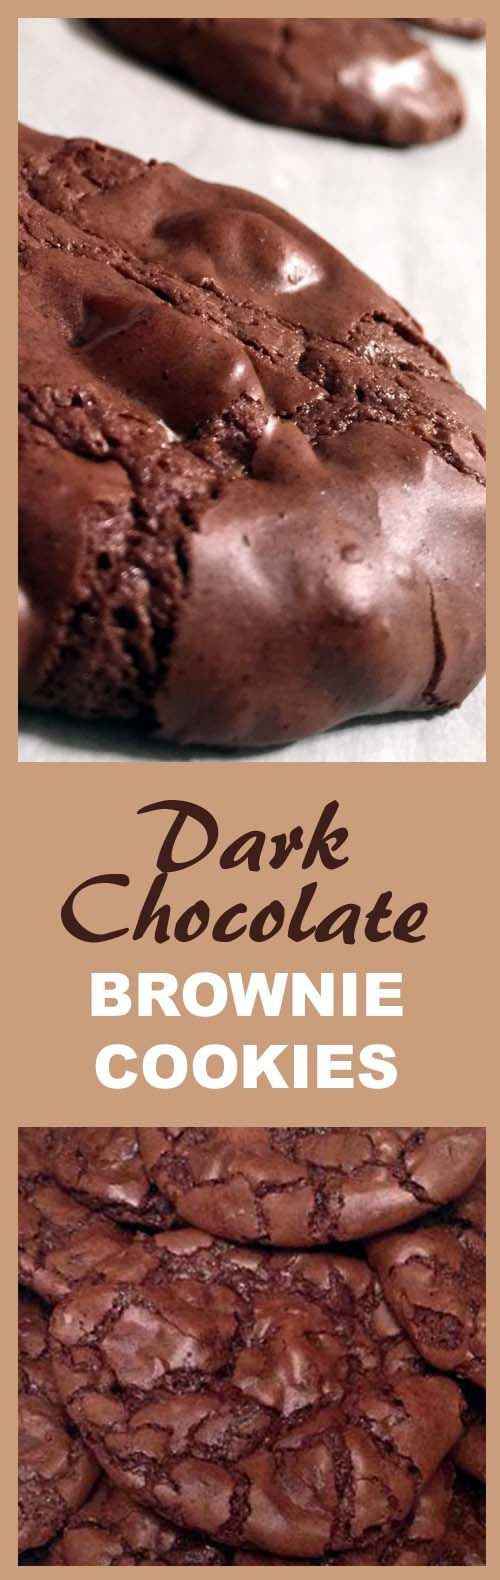 Dark Chocolate Brownie Cookies. Made from scratch. Crunchy scales outside, like a brownie crust. Chewy inside.